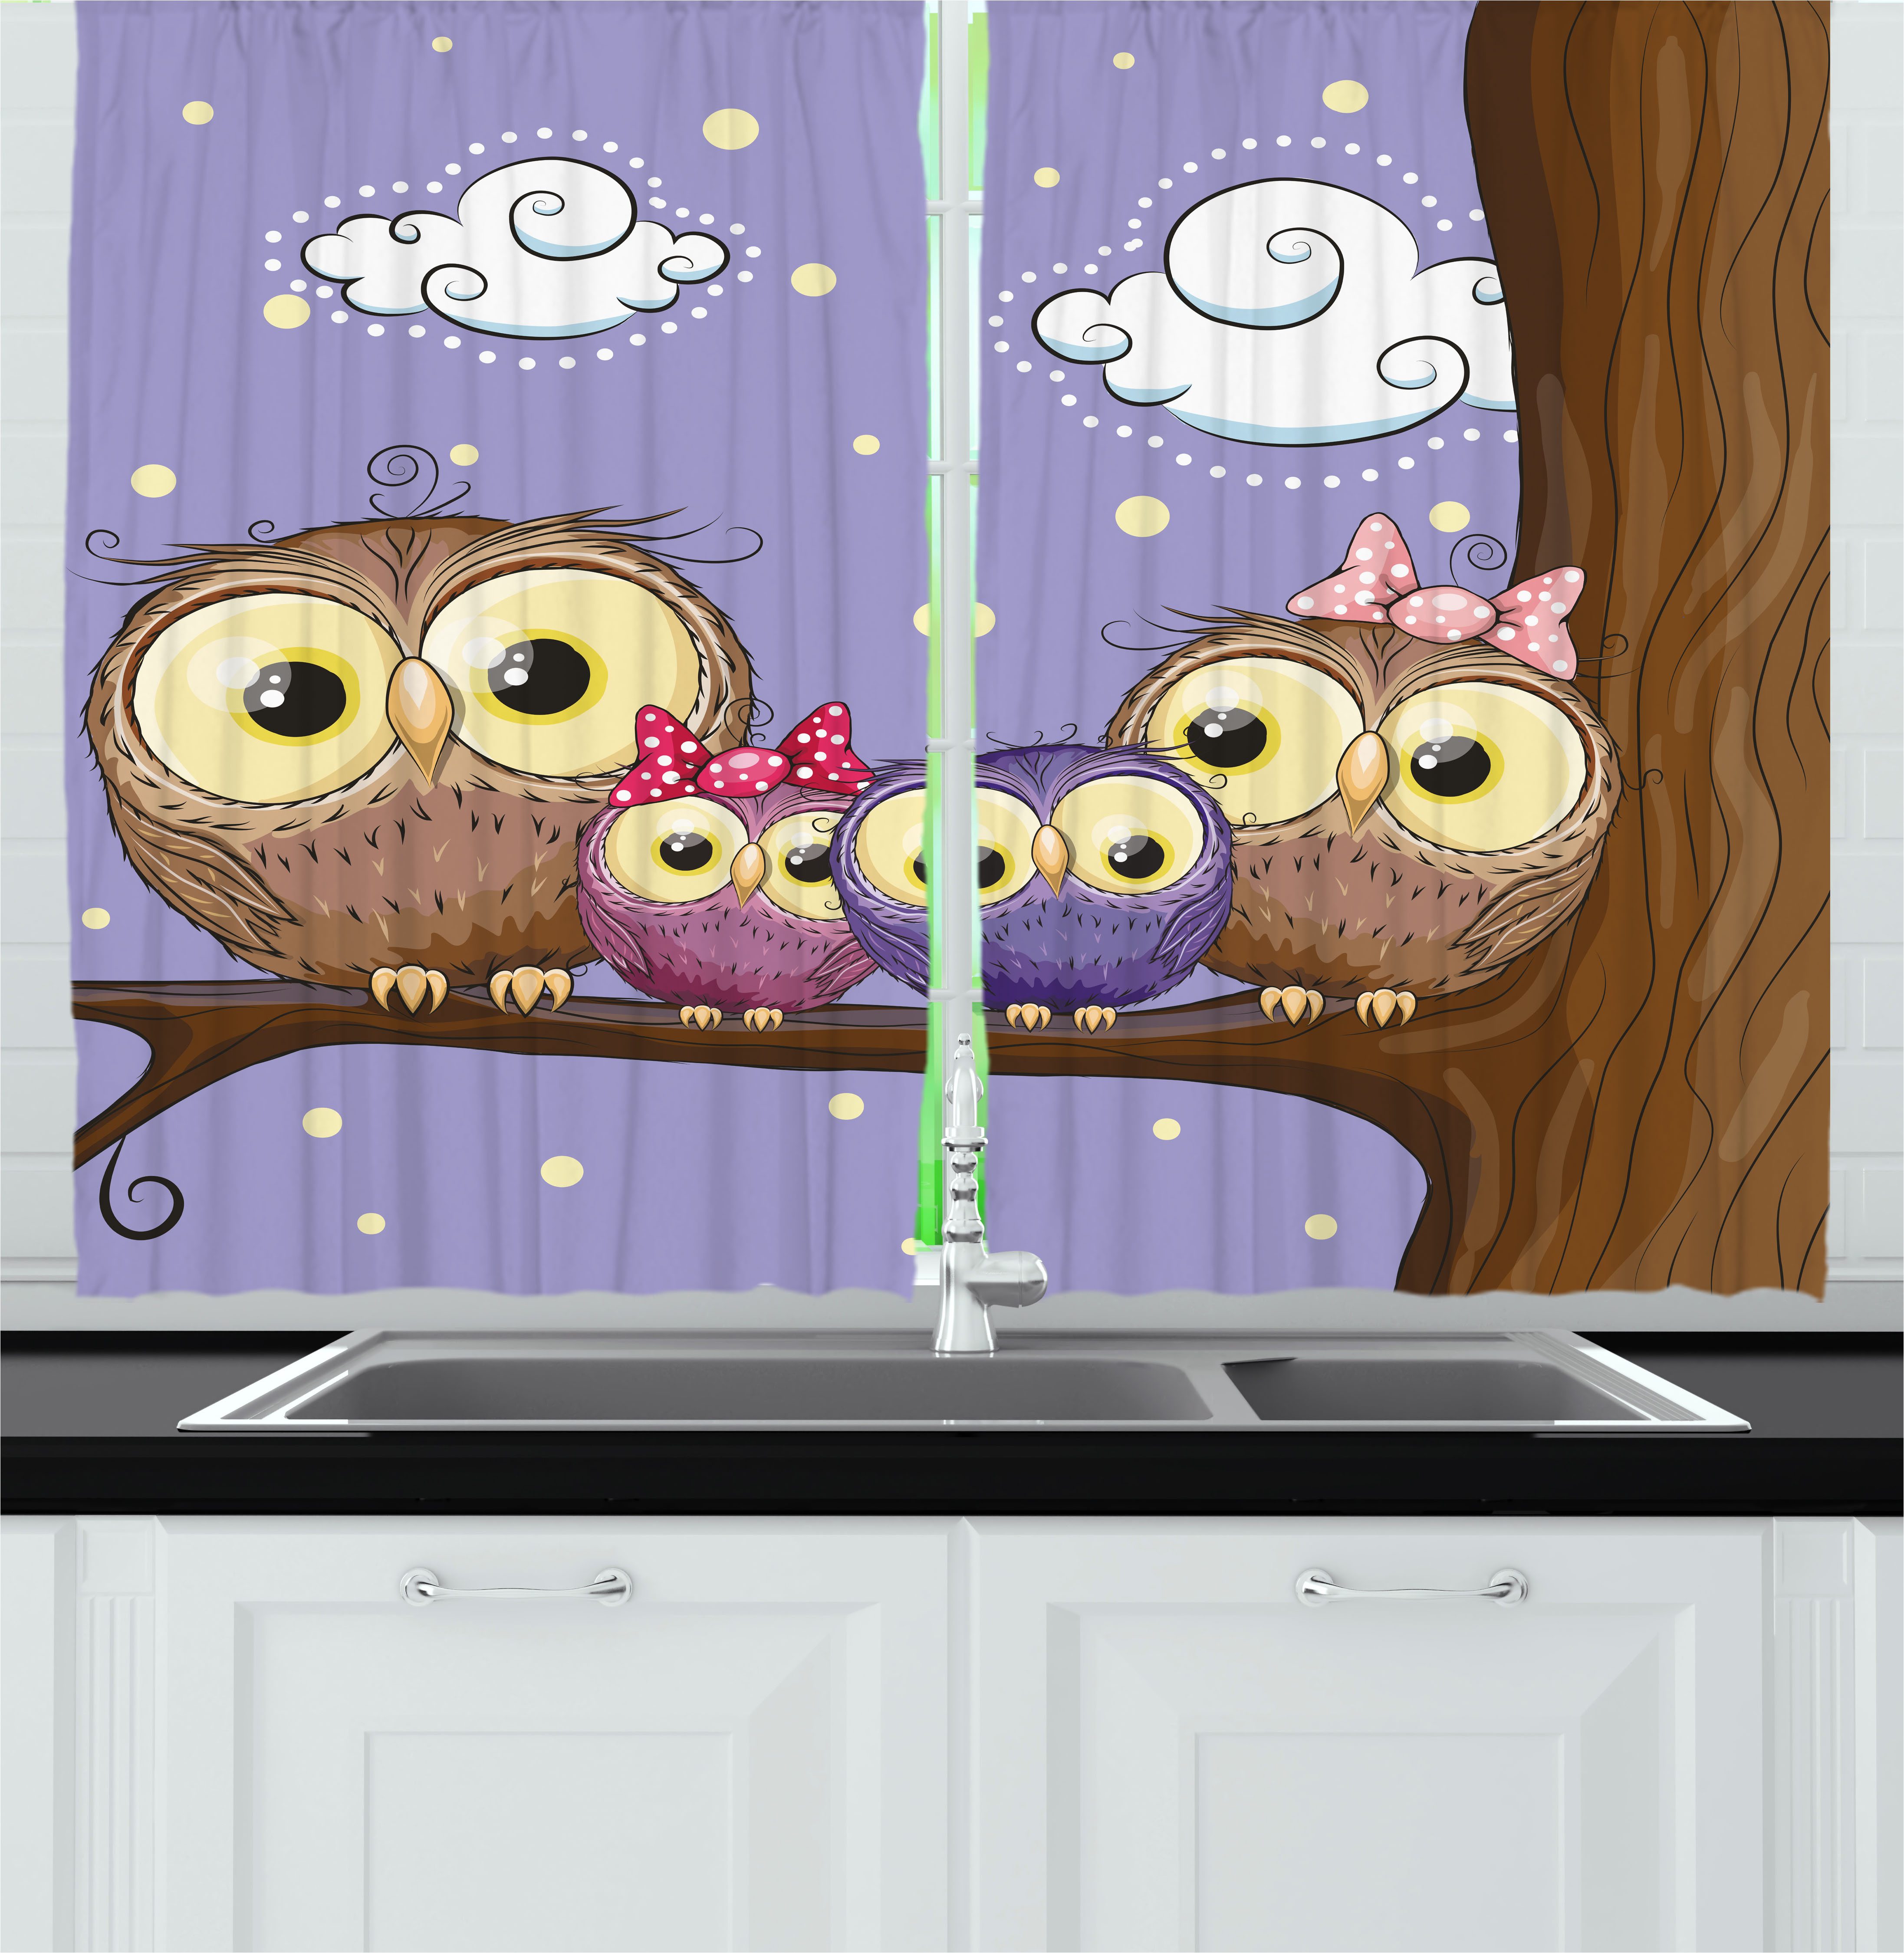 Kids Curtains 2 Panels Set, Cartoon Style Owl Bird Family Mother Father Daughter Son Sitting on a Branch, Window Drapes for Living Room Bedroom, 55W X 39L Inches, Brown and Lavander, by Ambesonne